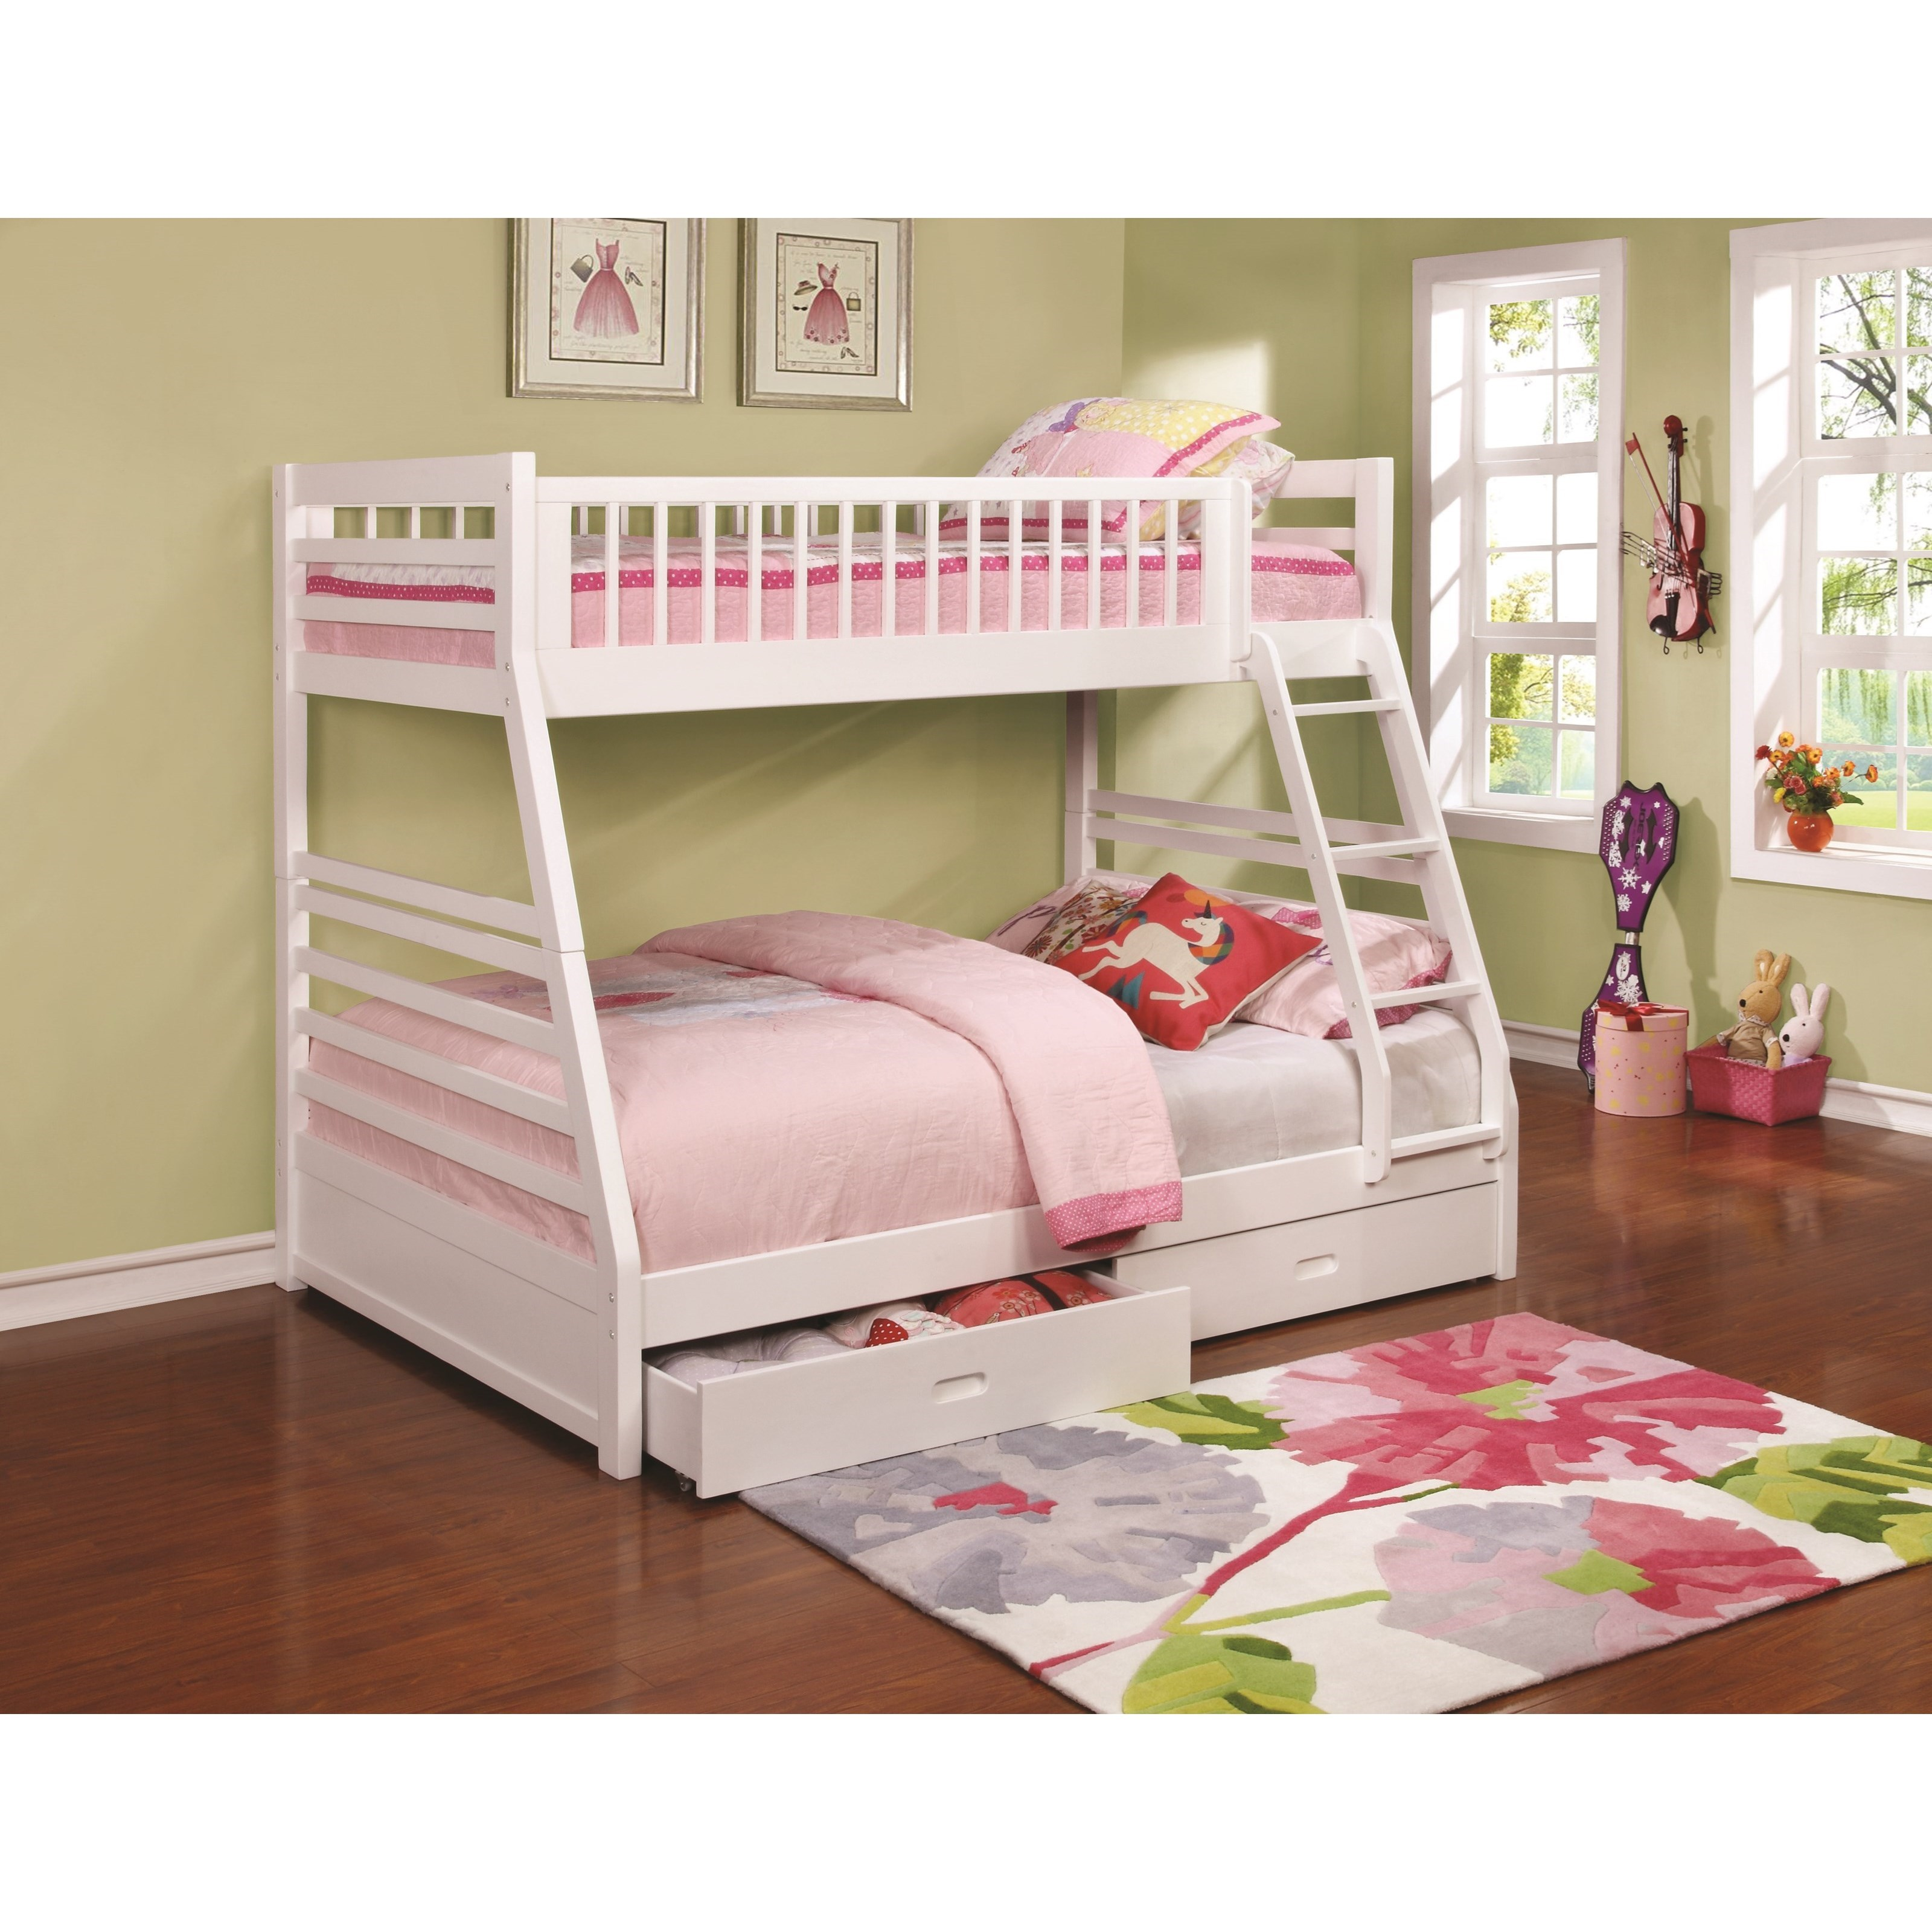 Coaster Bunks Twin Over Full Bunk Bed With 2 Drawers And